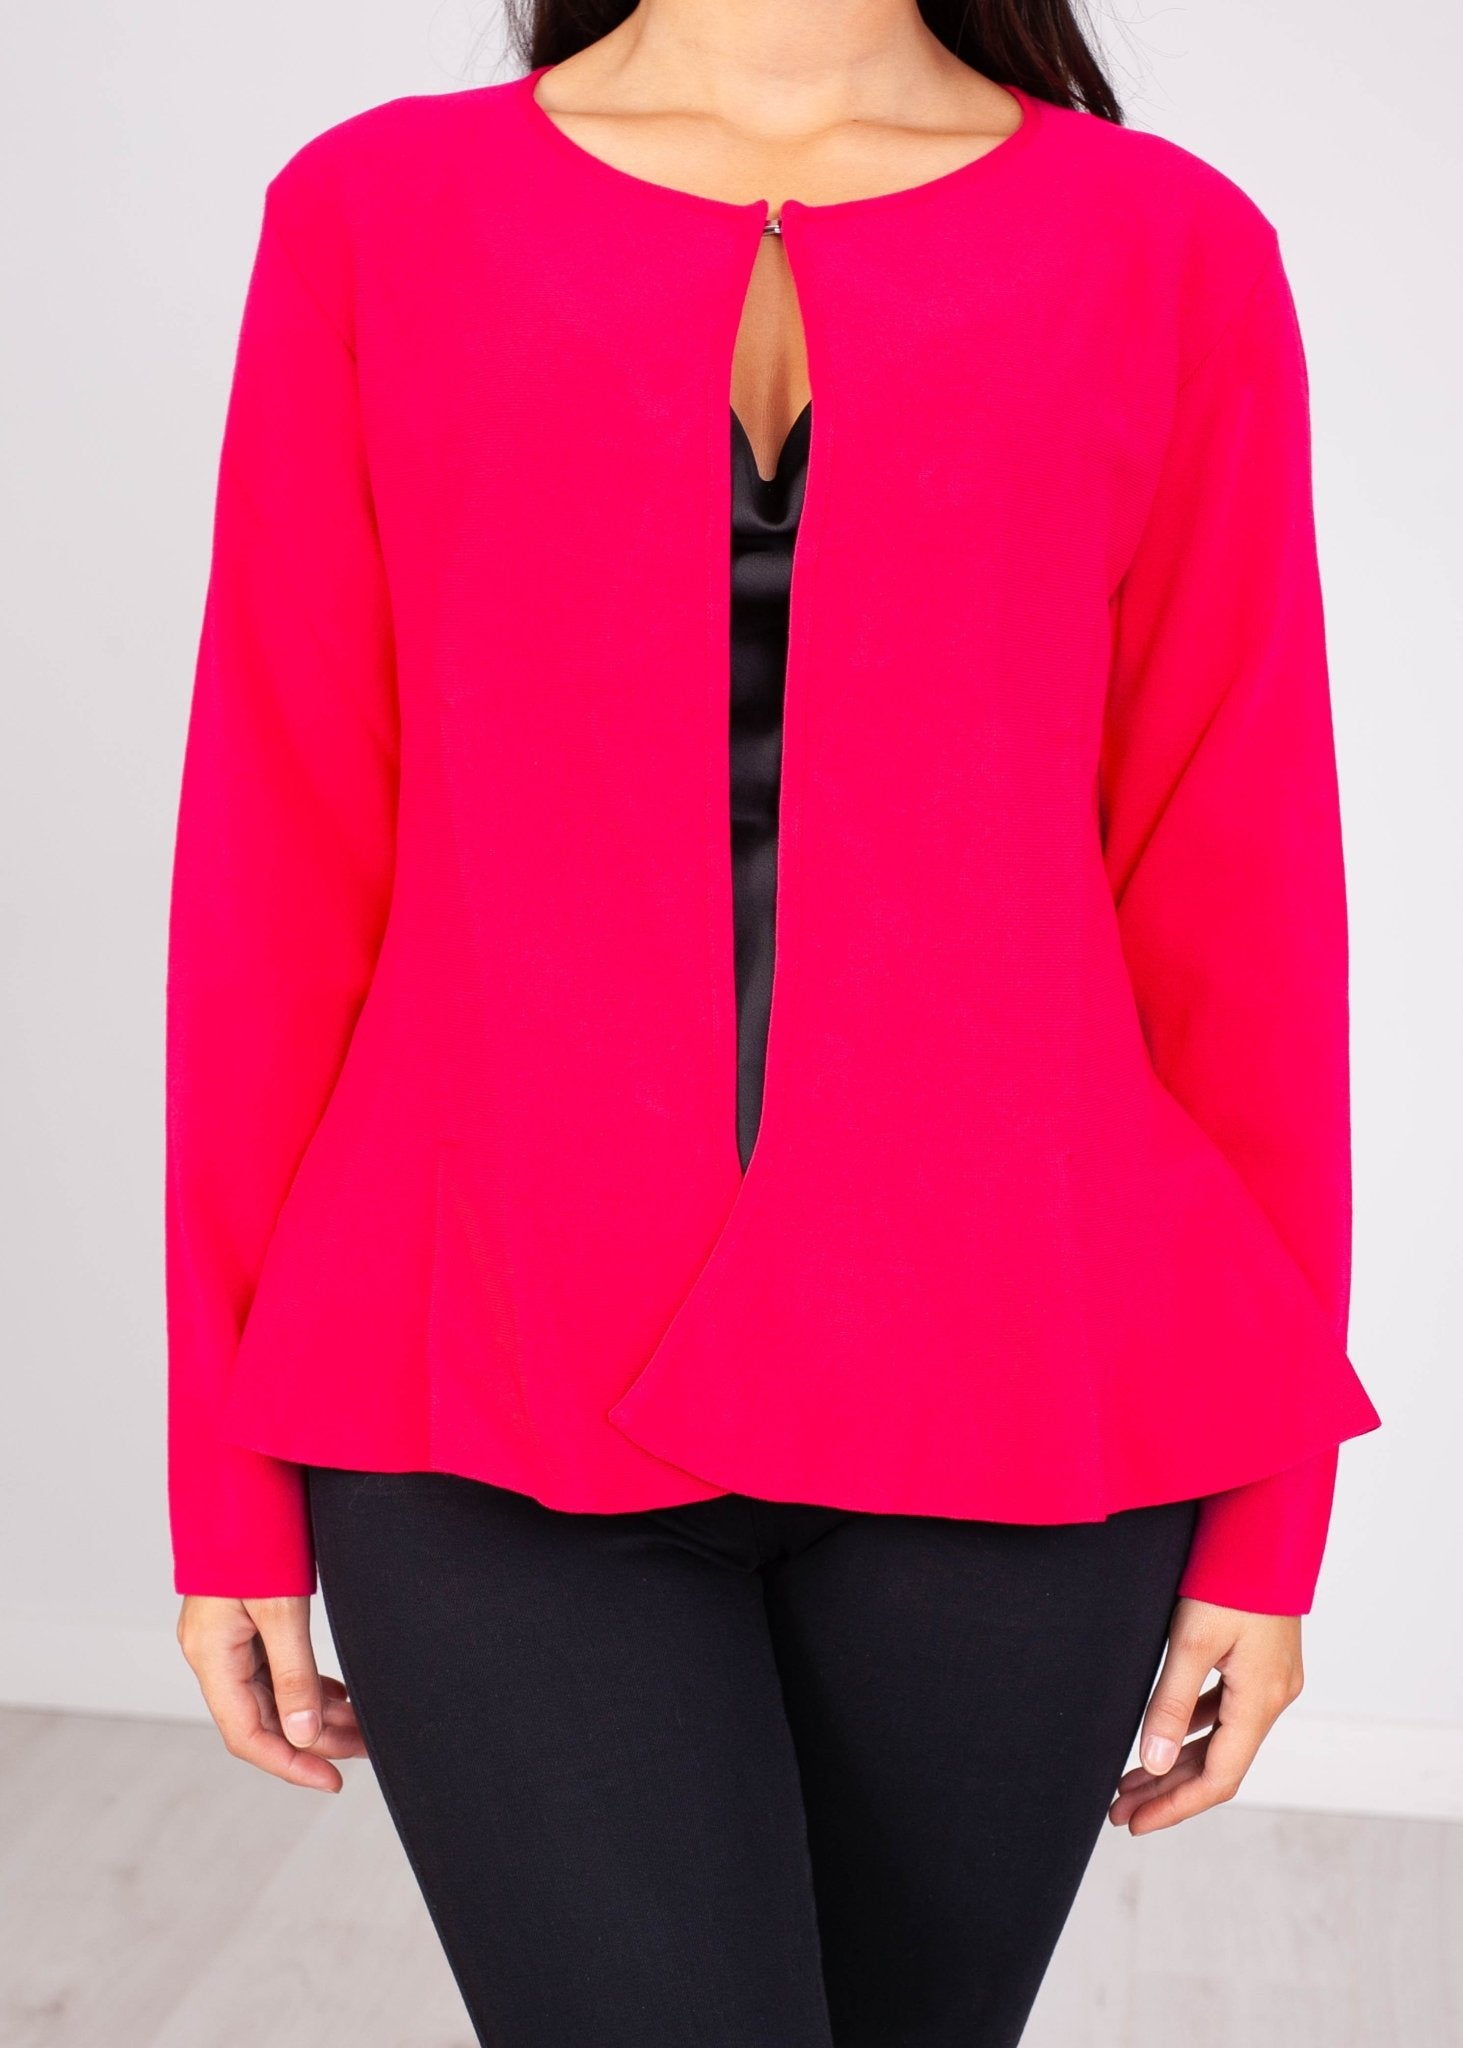 Perla Pink Peplum Cardigan - The Walk in Wardrobe